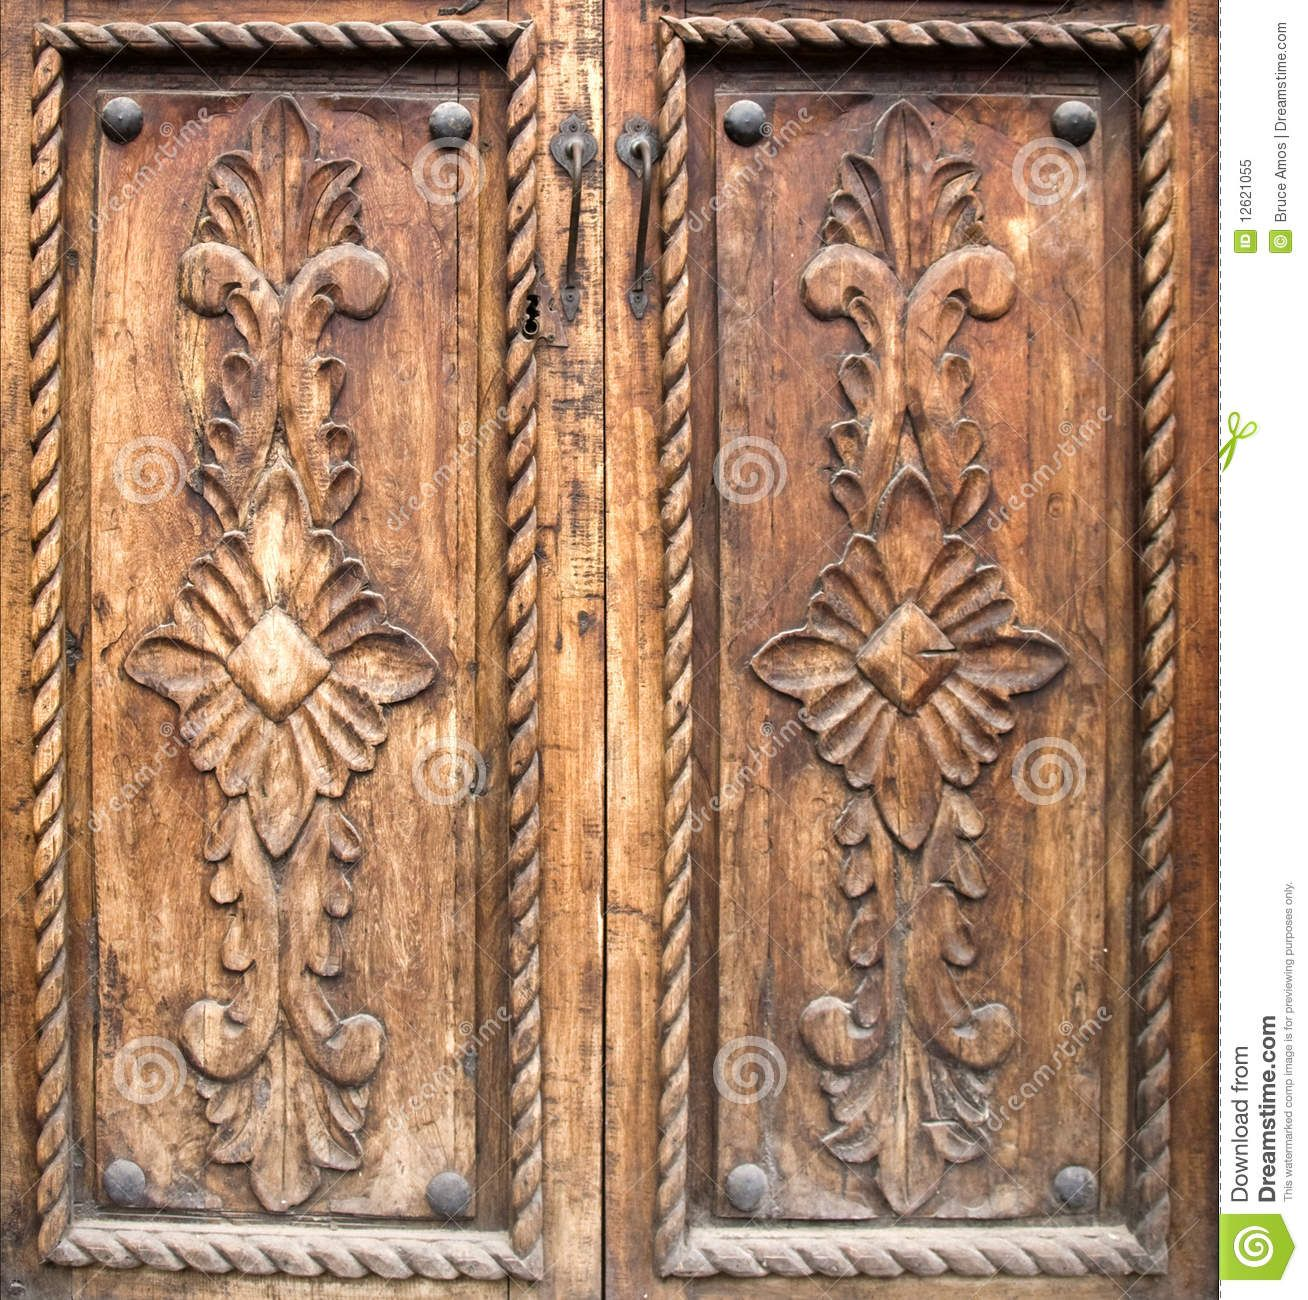 Antique Carved Wooden Doors Royalty Free Stock Photo - Image: 12621055 - Antique Carved Wooden Doors Royalty Free Stock Photo - Image